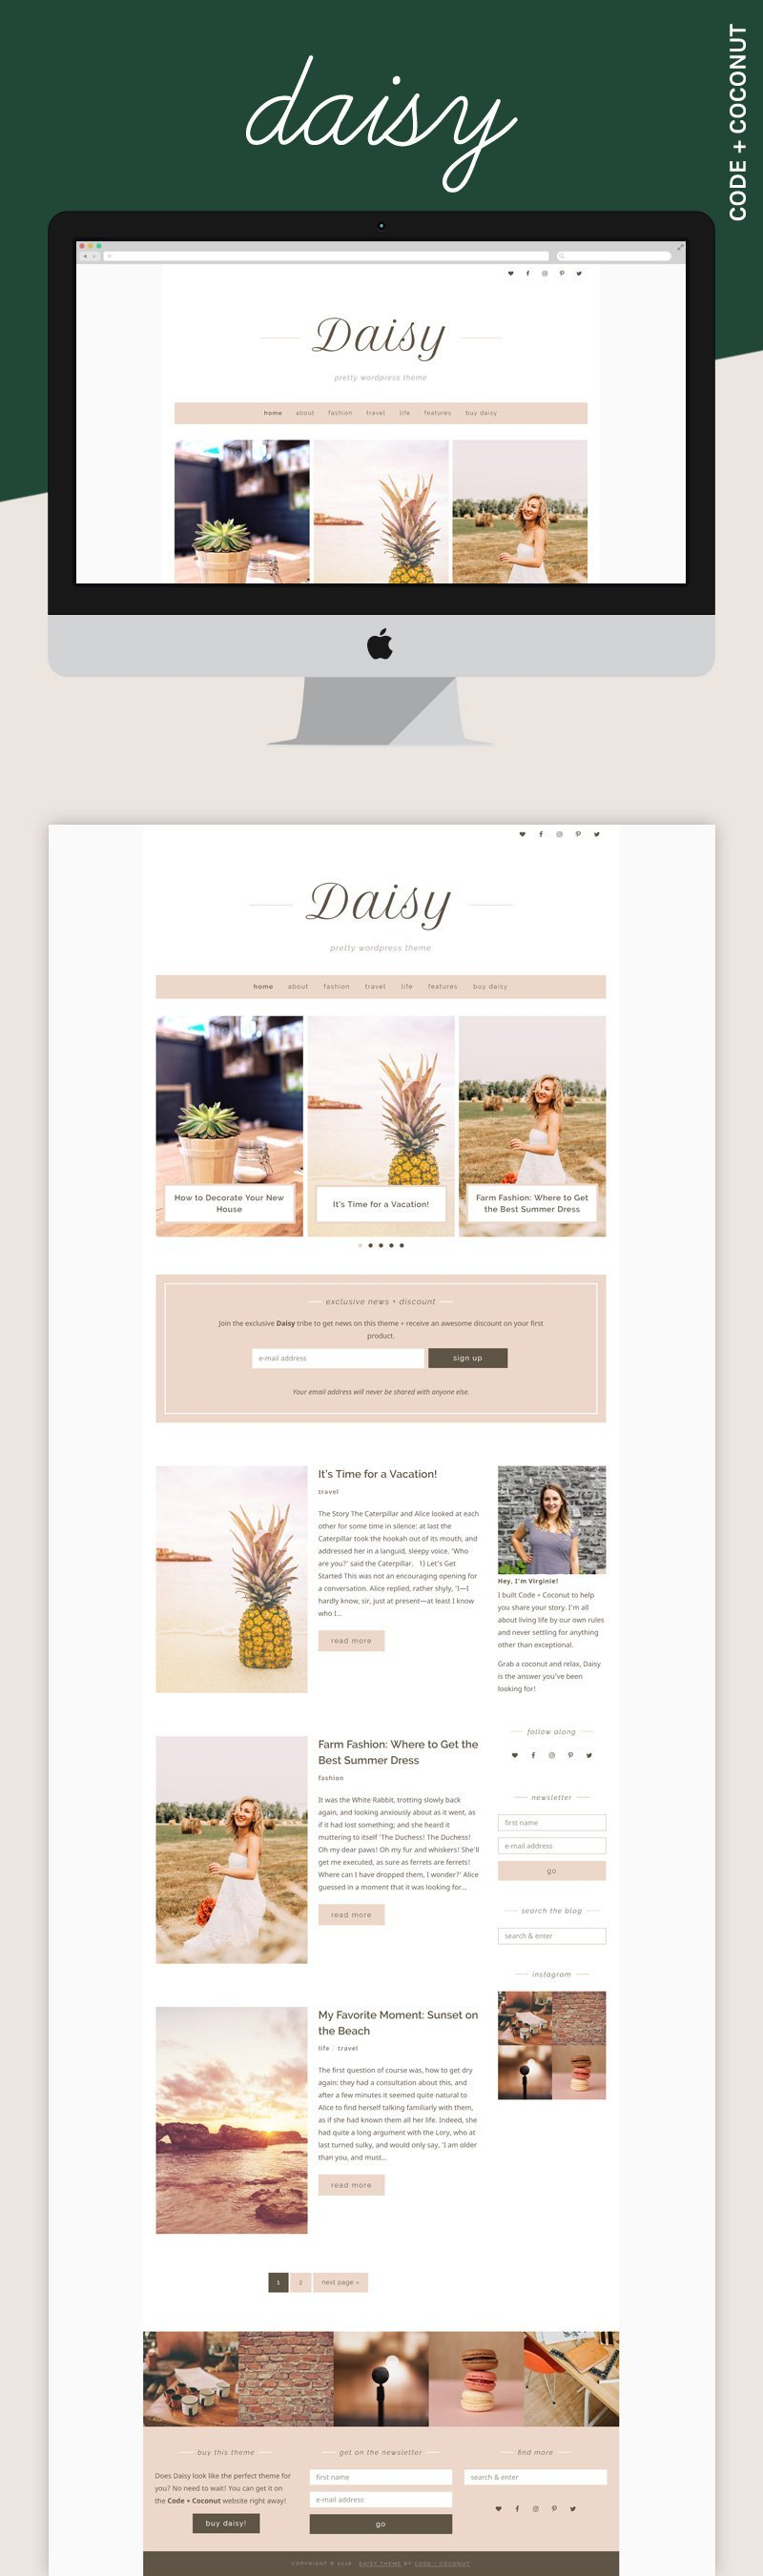 Looking for a soft WordPress theme? Daisy is a clean and elegant theme for all types of bloggers!